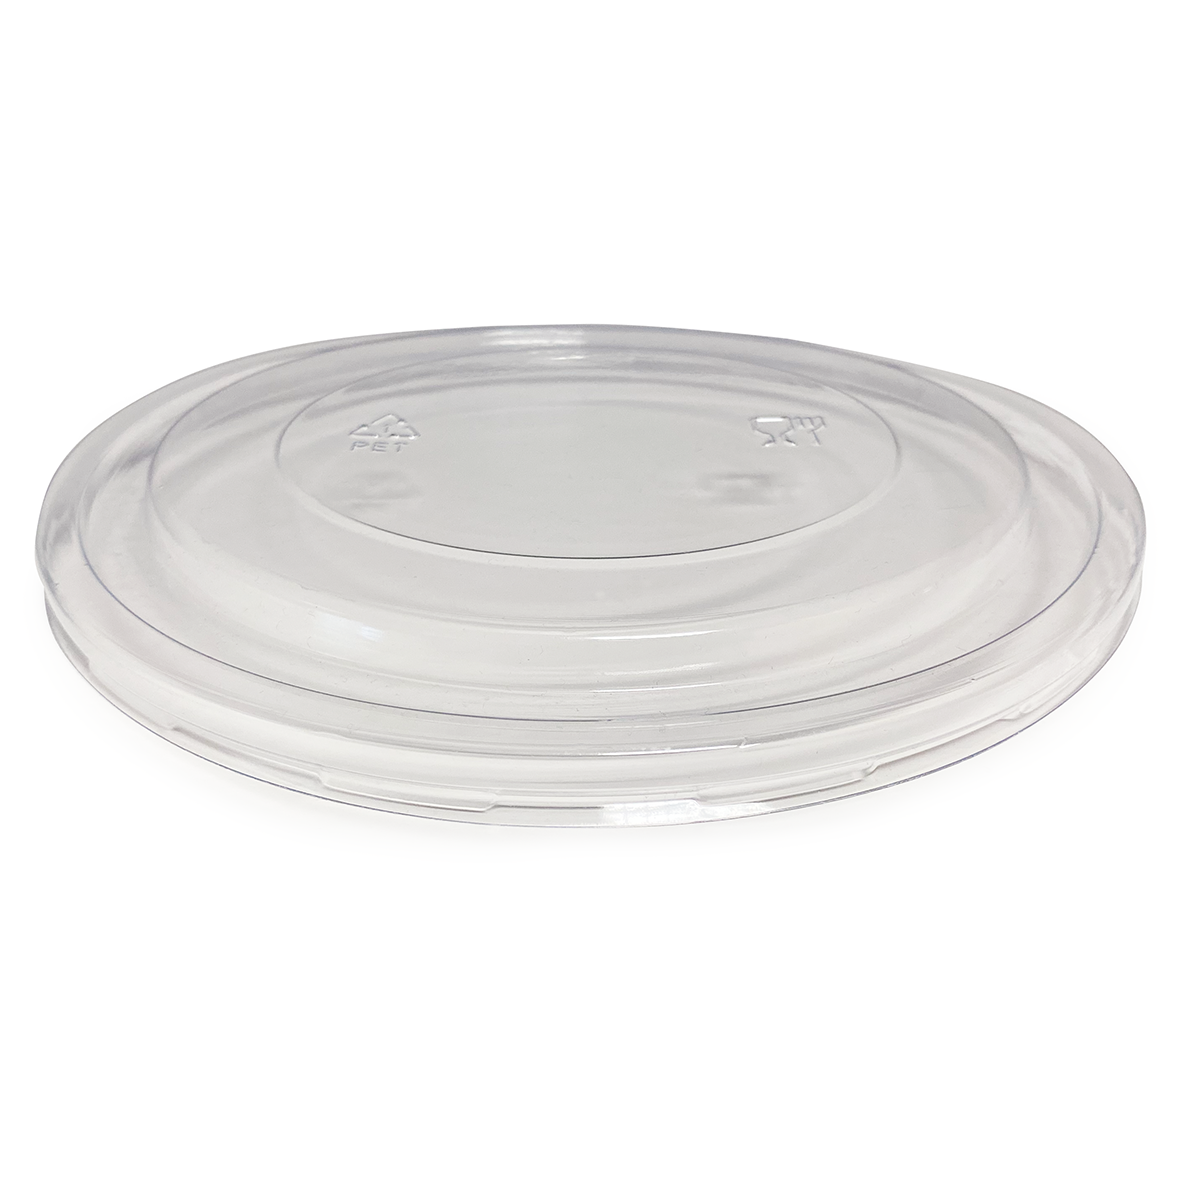 Simply Kraft Multi-food Bowl Lid - 1000ml/1300ml